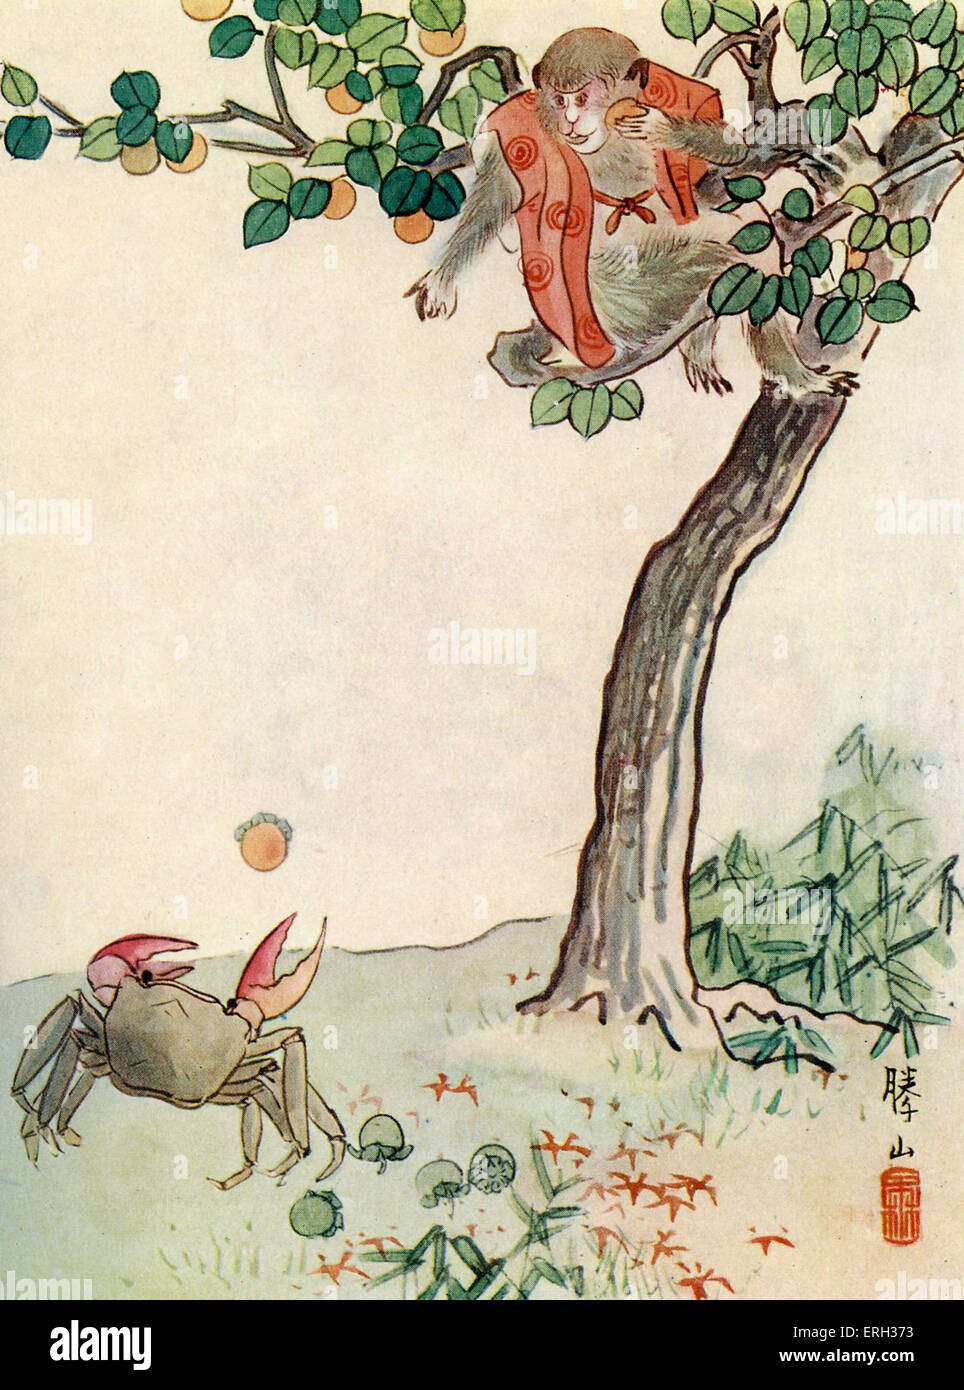 The Story of the Monkey and the Crab, from Wonder Tales of Old Japan by Alan Leslie Whitehorn, Published 1911 (Japanese - Stock Image